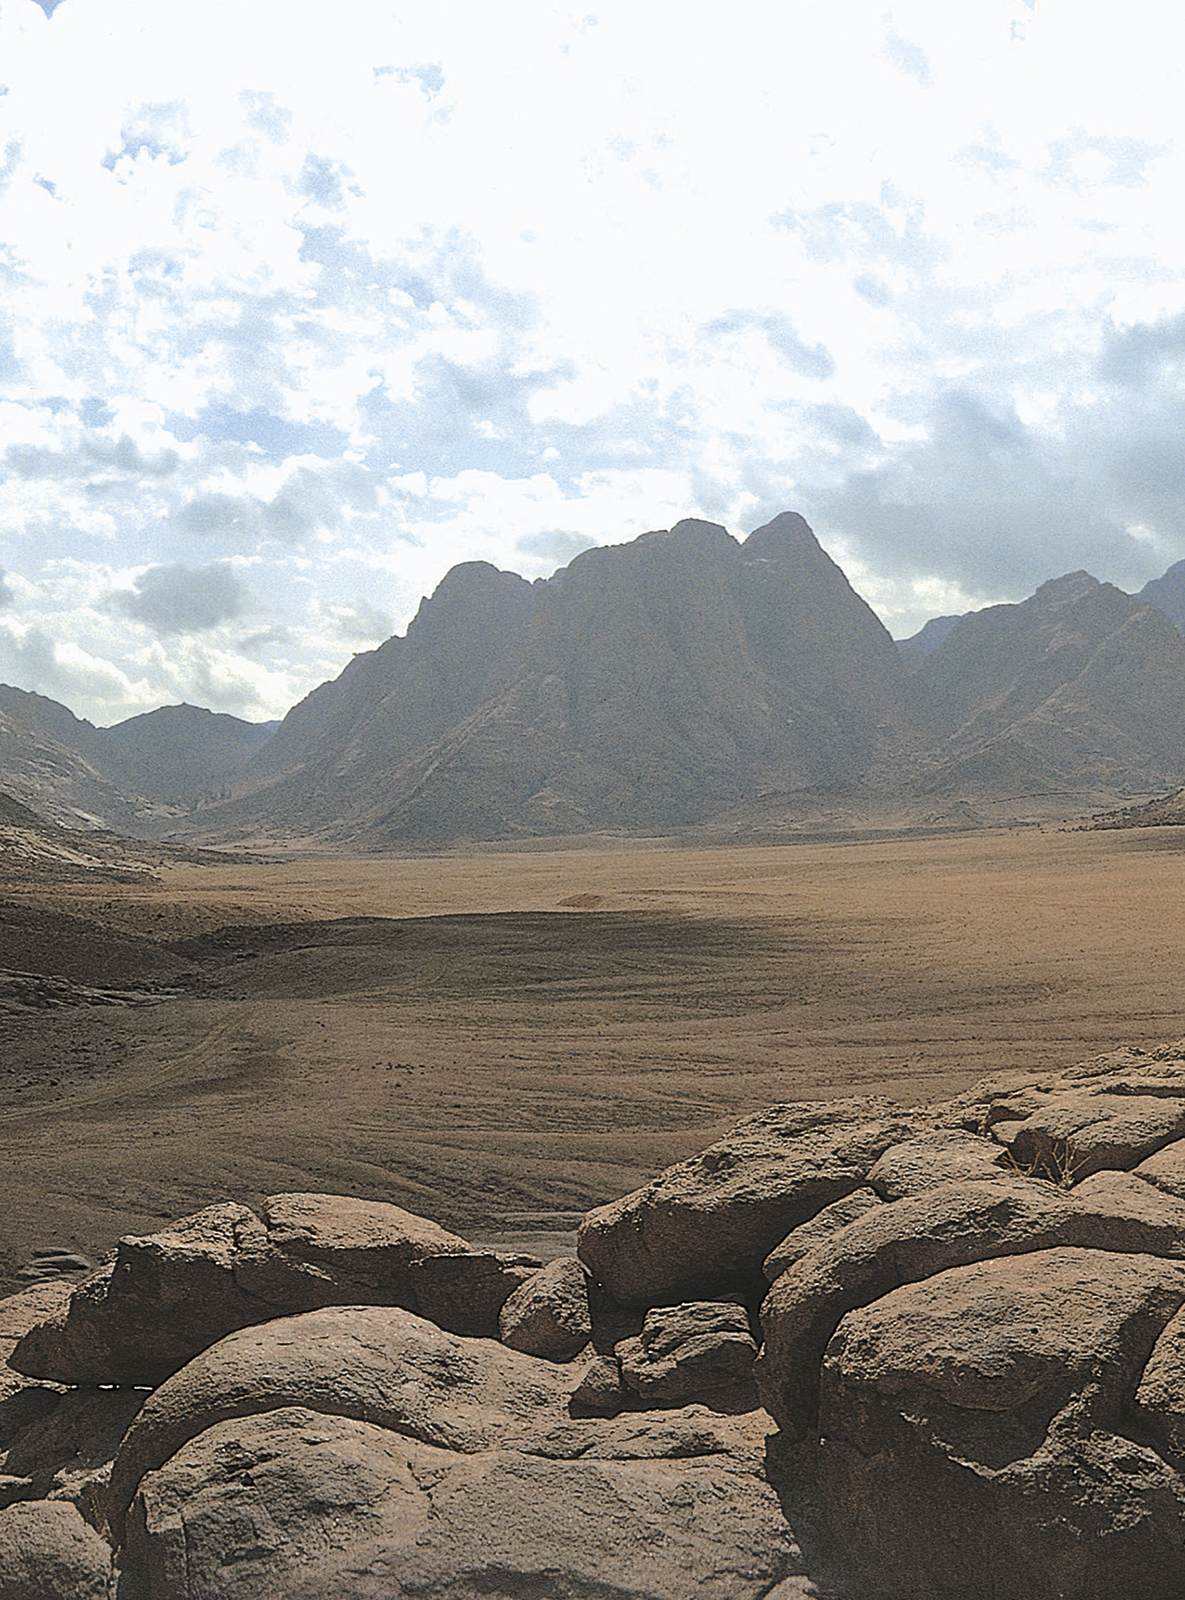 Mount Sinai Horeb and the Sinai Wilderness 1185x1600